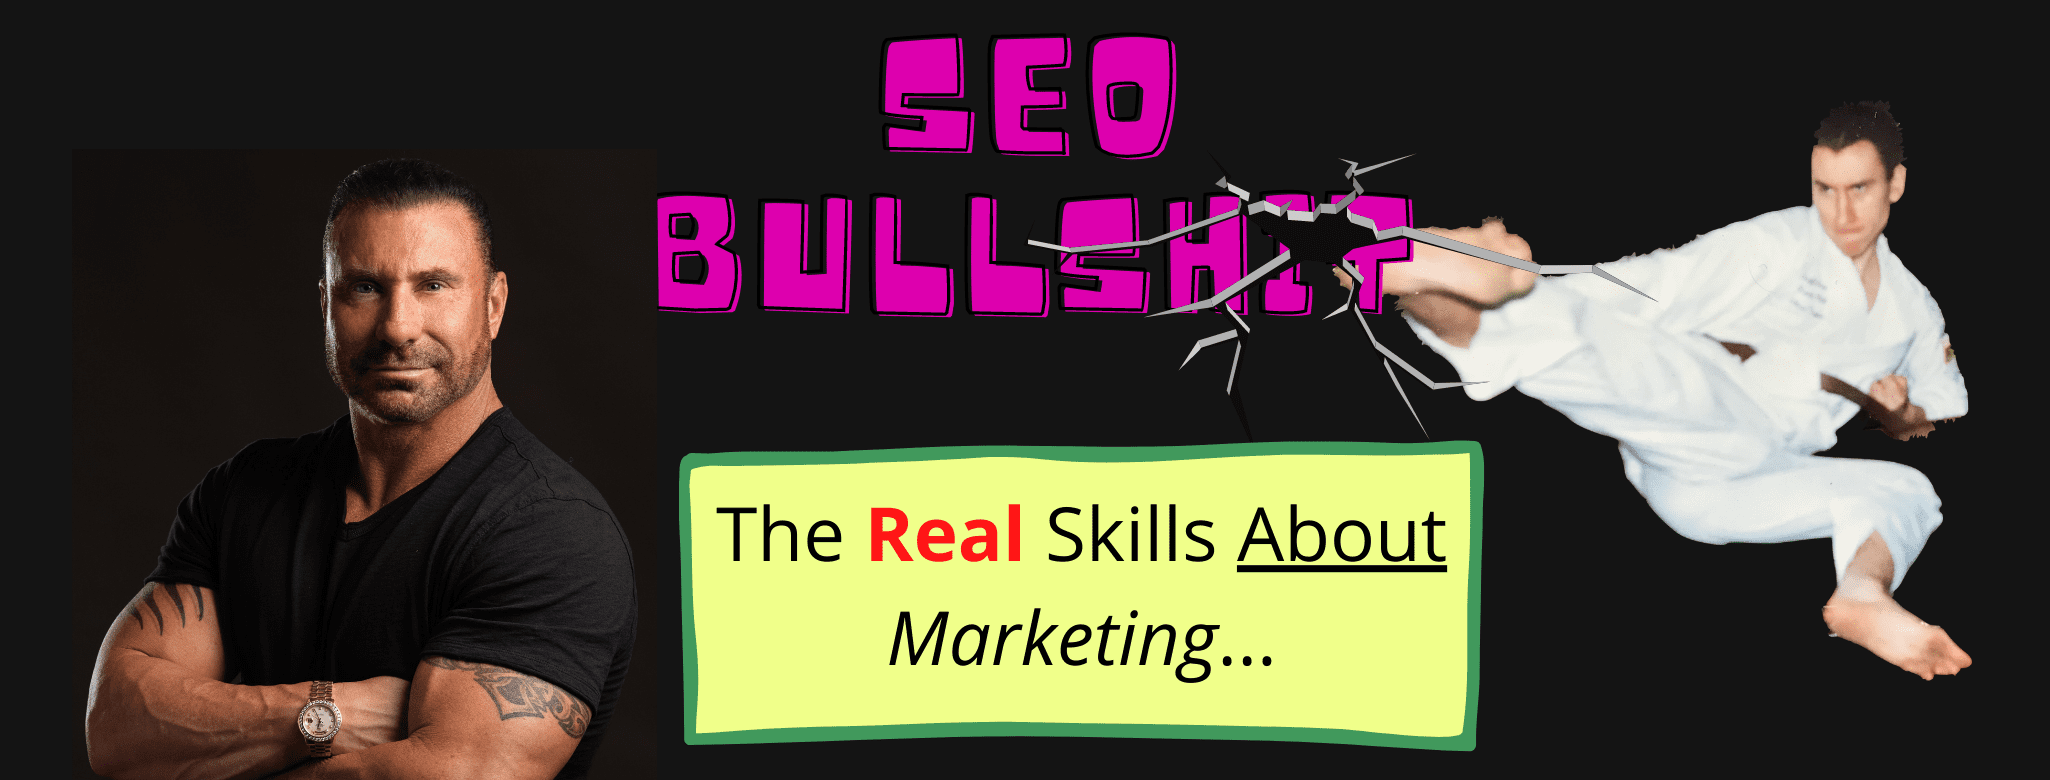 picture of The real skills about marketing